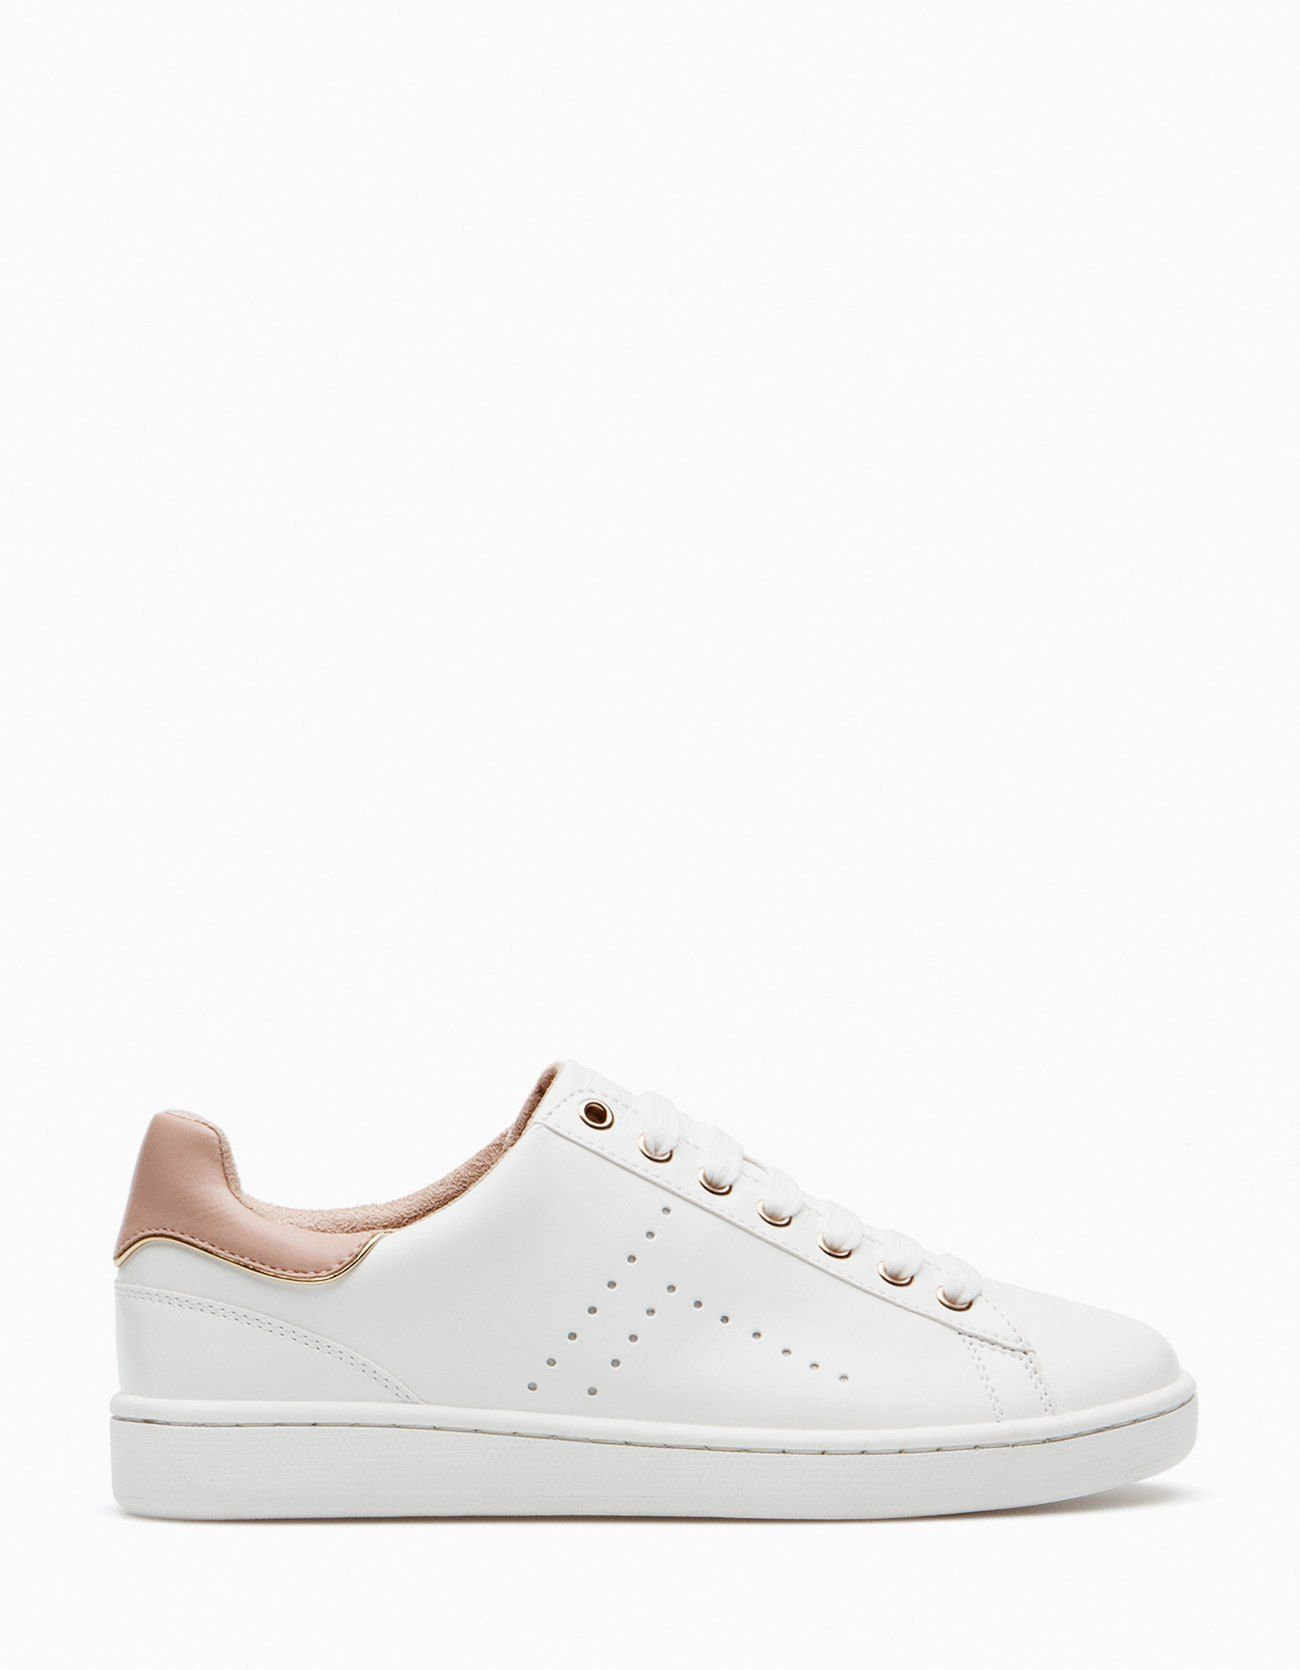 huge discount f3ccf 0c4b0 White sneakers - ALL - WOMAN   Stradivarius United Kingdom